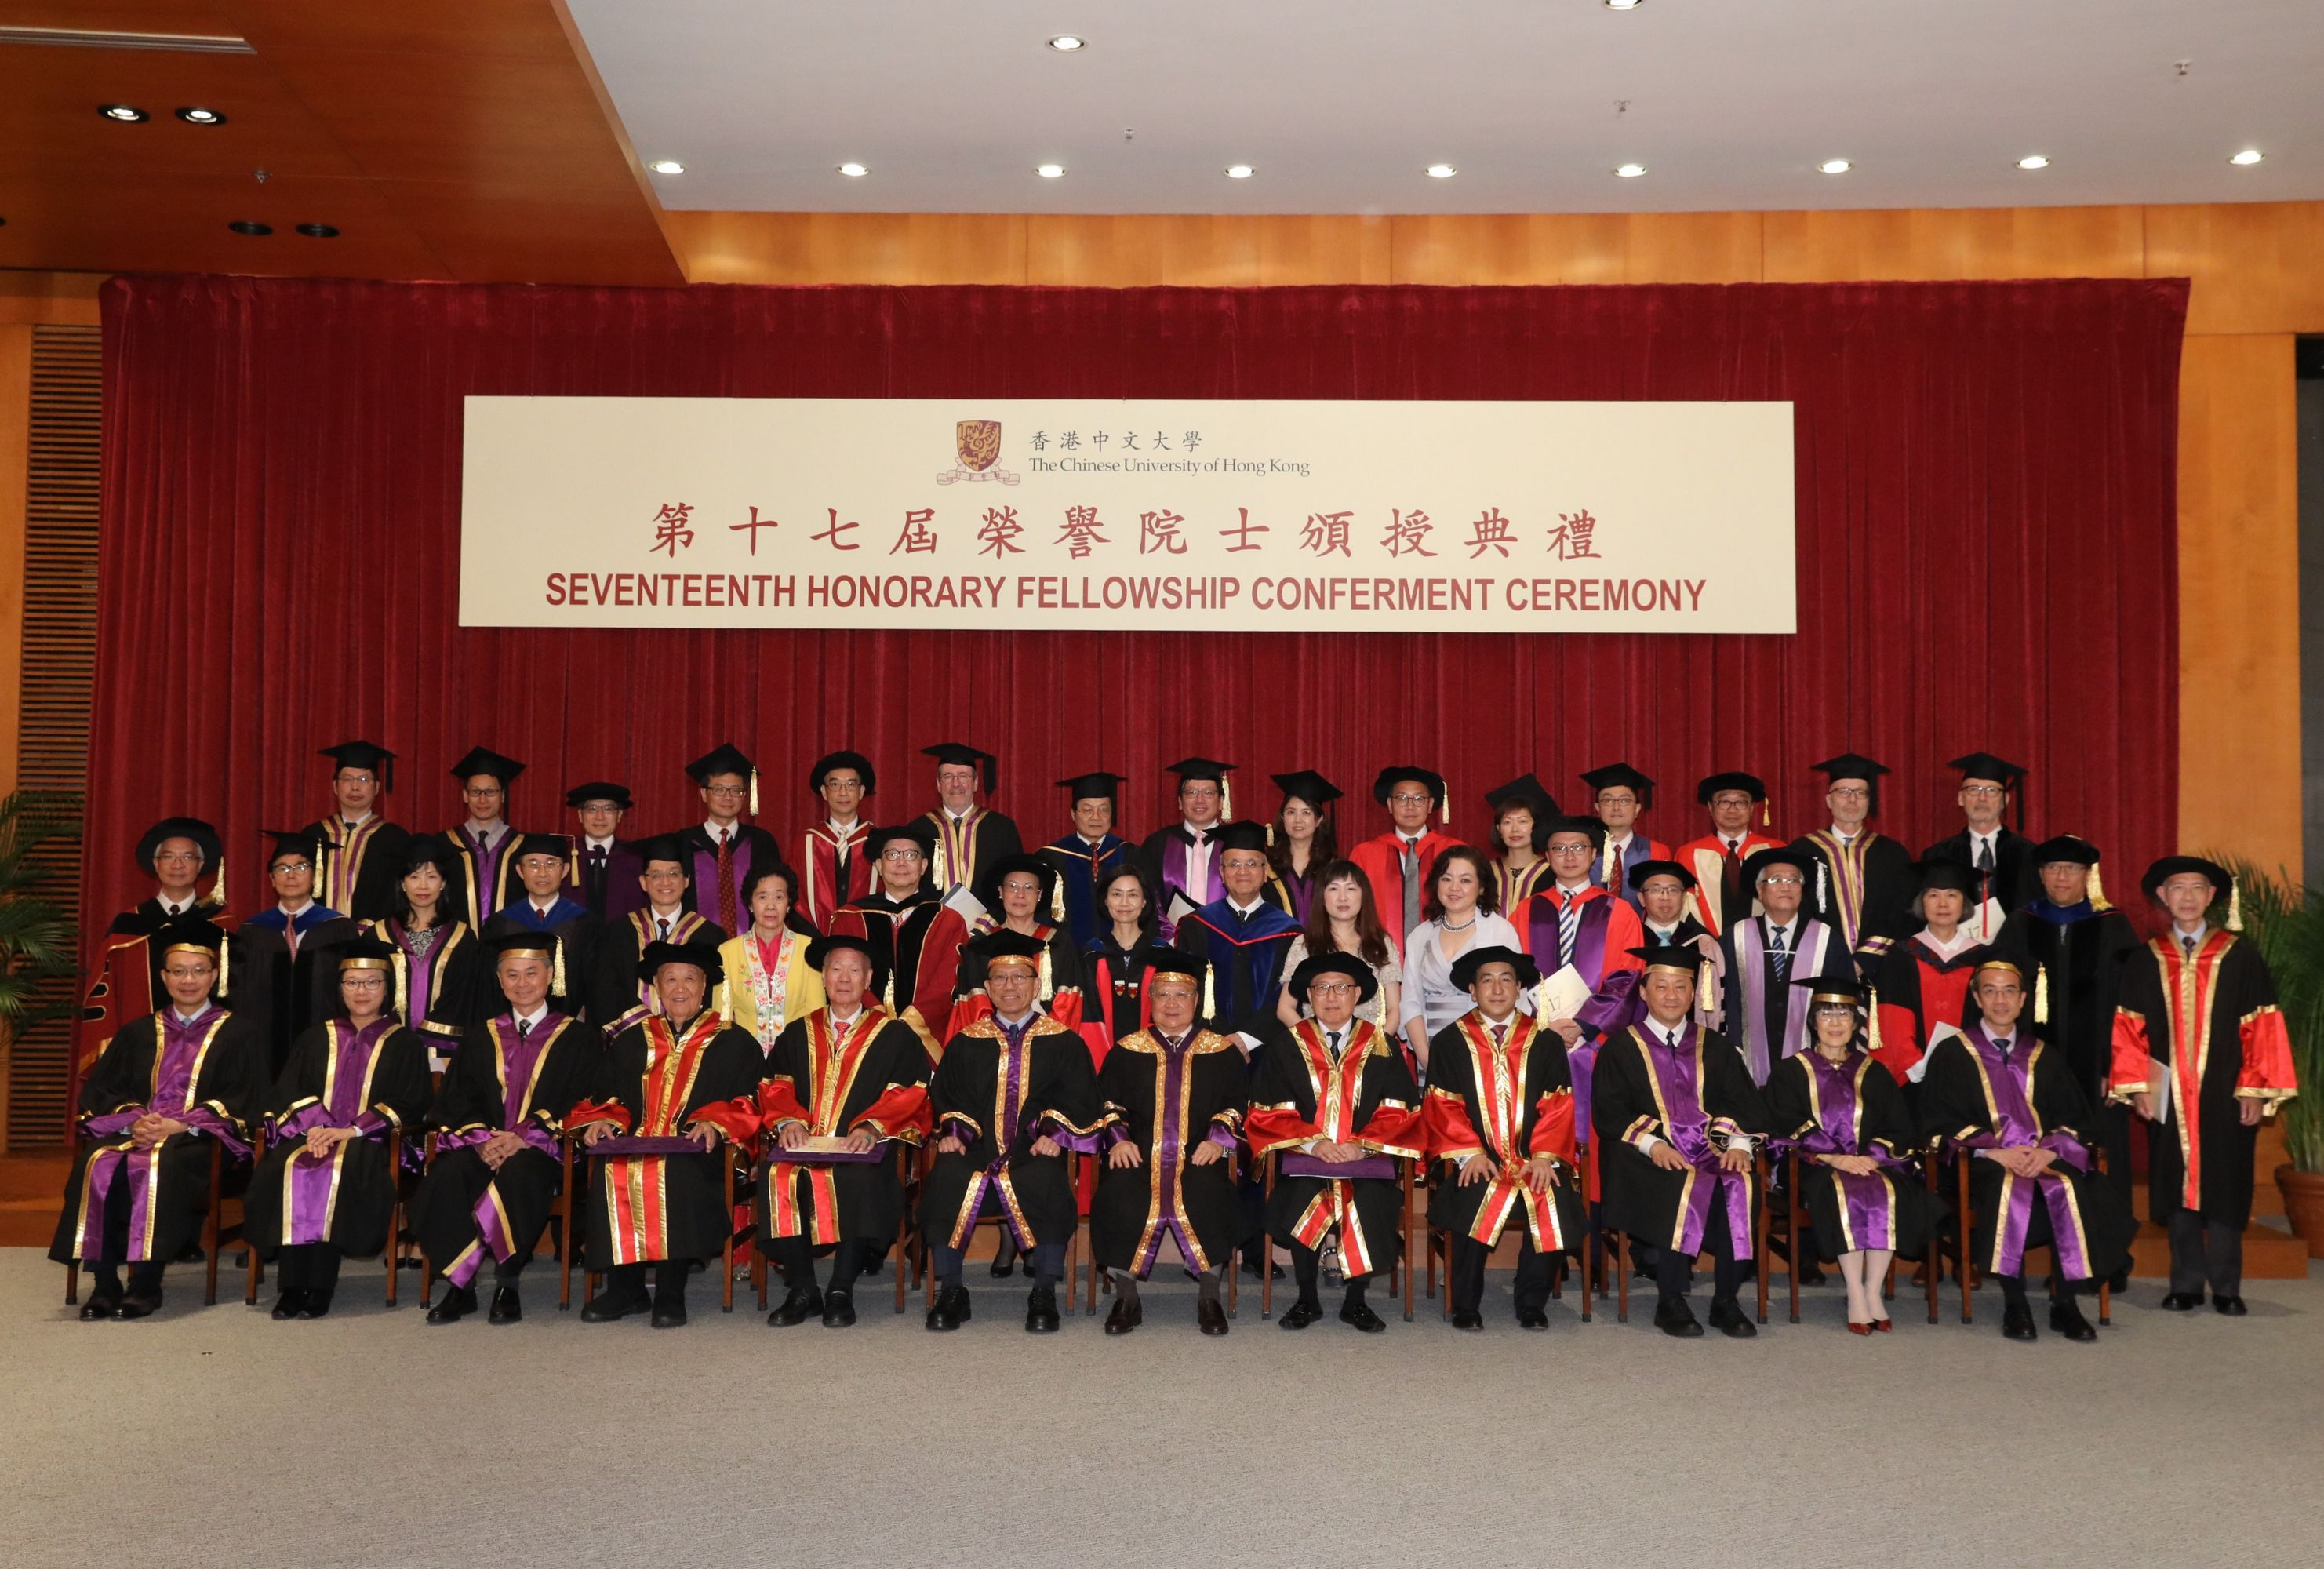 Group photos of the honorary fellows, Council Chairman Dr. Norman Leung (6th right, front row), Vice-Chancellor Prof. Rocky Tuan (6th left, front row), Provost Prof. Benjamin Wah (3rd right, front row), and Pro-Vice-Chancellors Prof. Dennis Ng, Prof. Fanny Cheung (1st-2nd right, front row), Prof. Poon Wai-yin, Prof. Fok Tai-fai (2nd-3rd left, front row) and Vice-President Mr. Eric Ng (1st left, front row).